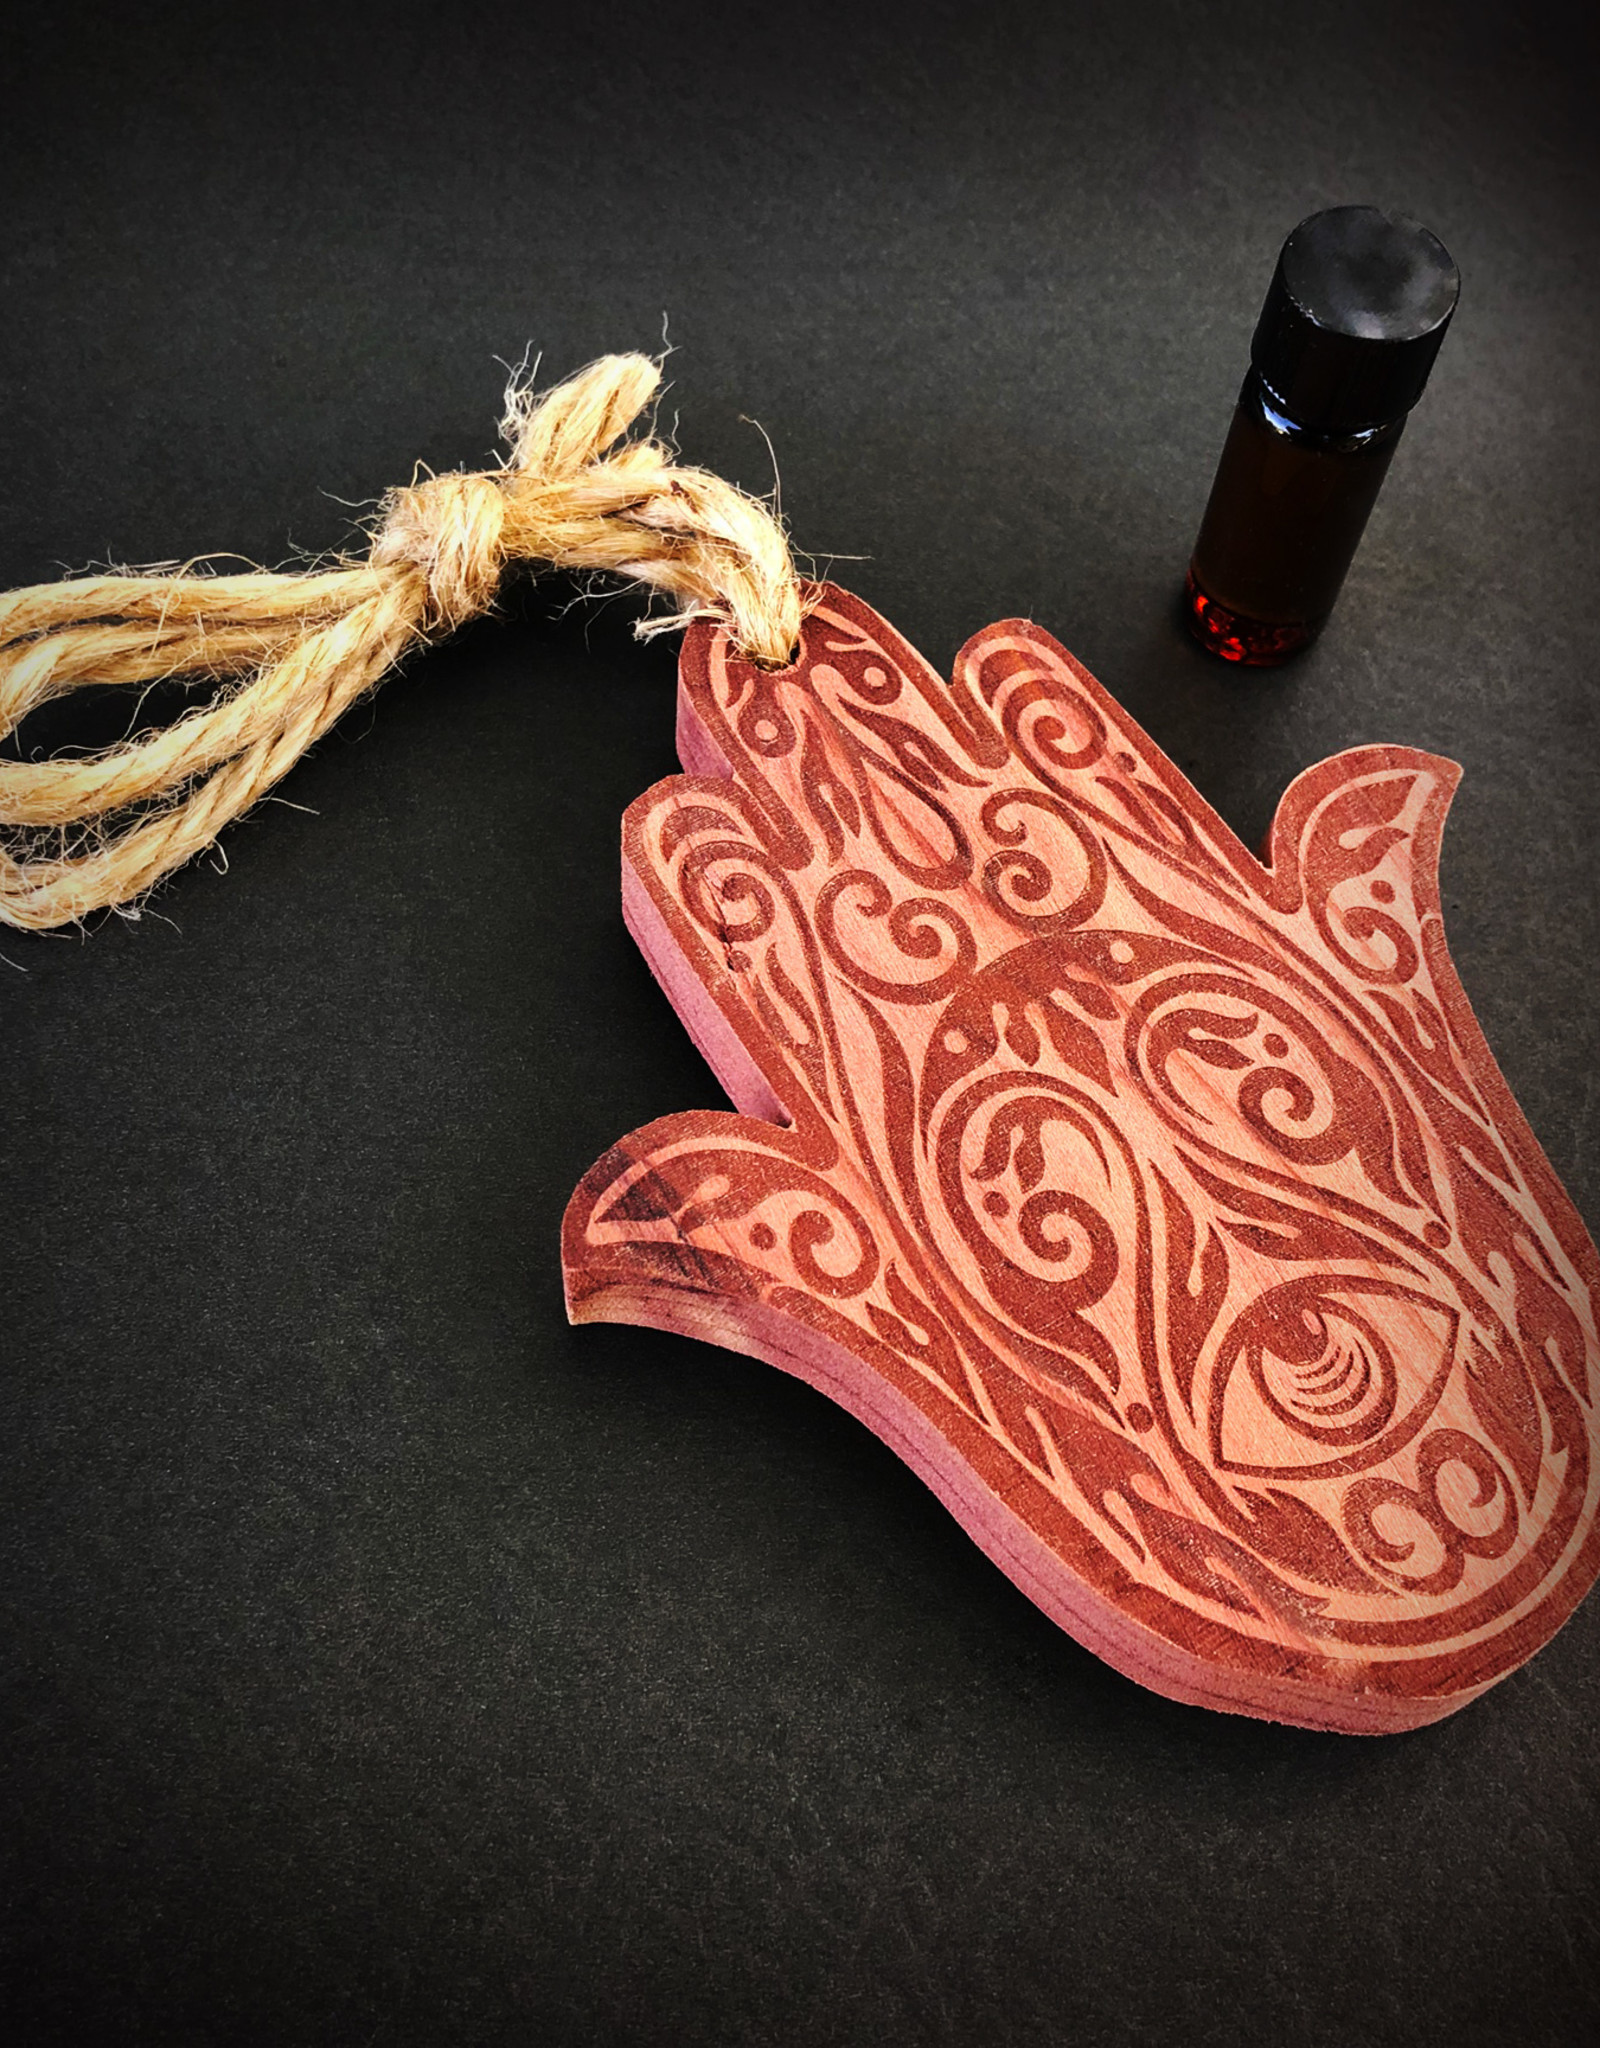 Phoenix Woodworking Cedar Ornaments + Air Fresheners by Phoenix Woodworking